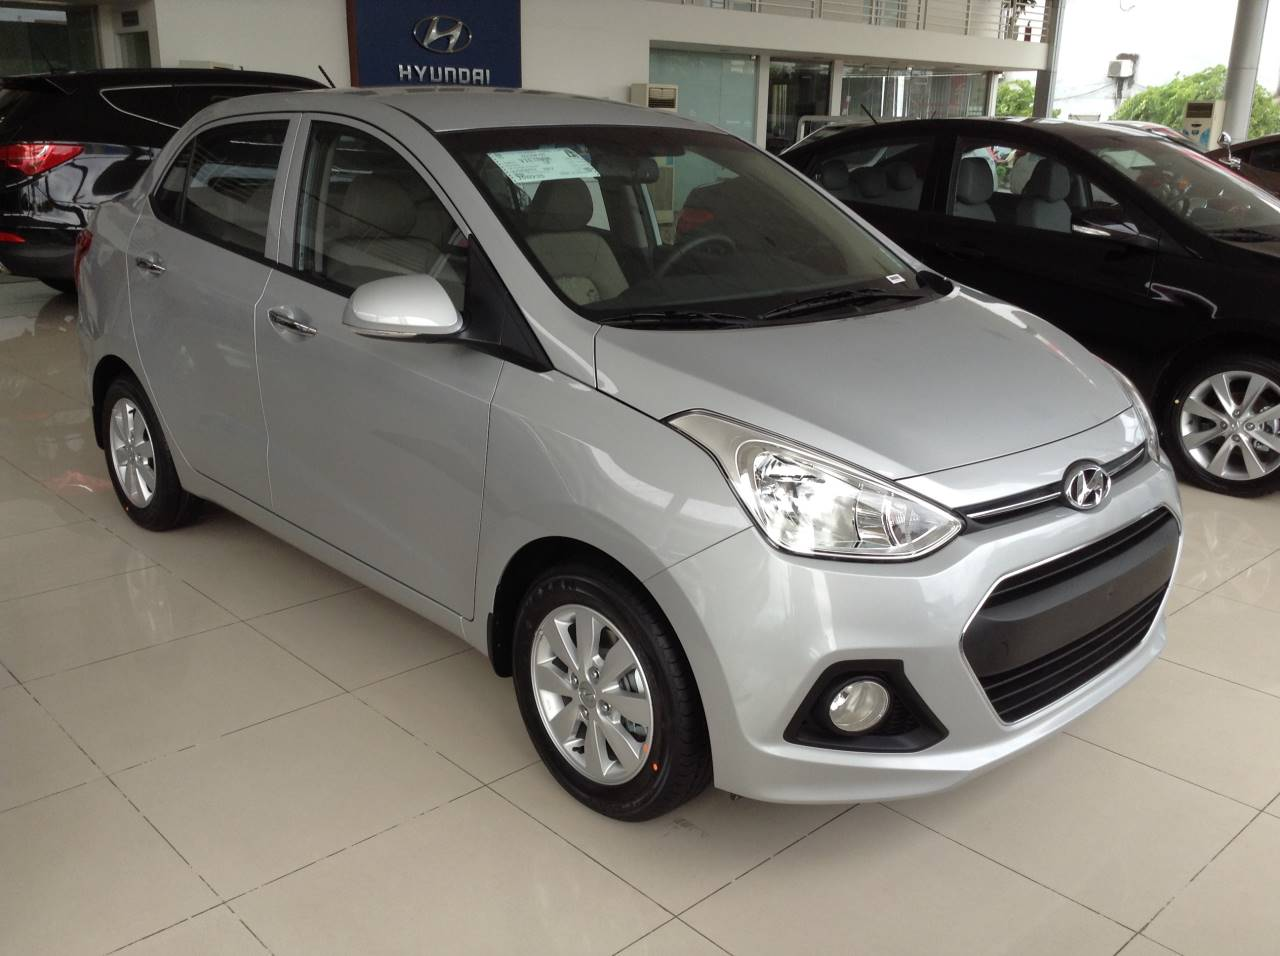 Hyundai i10 1.2 MT sedan 2015